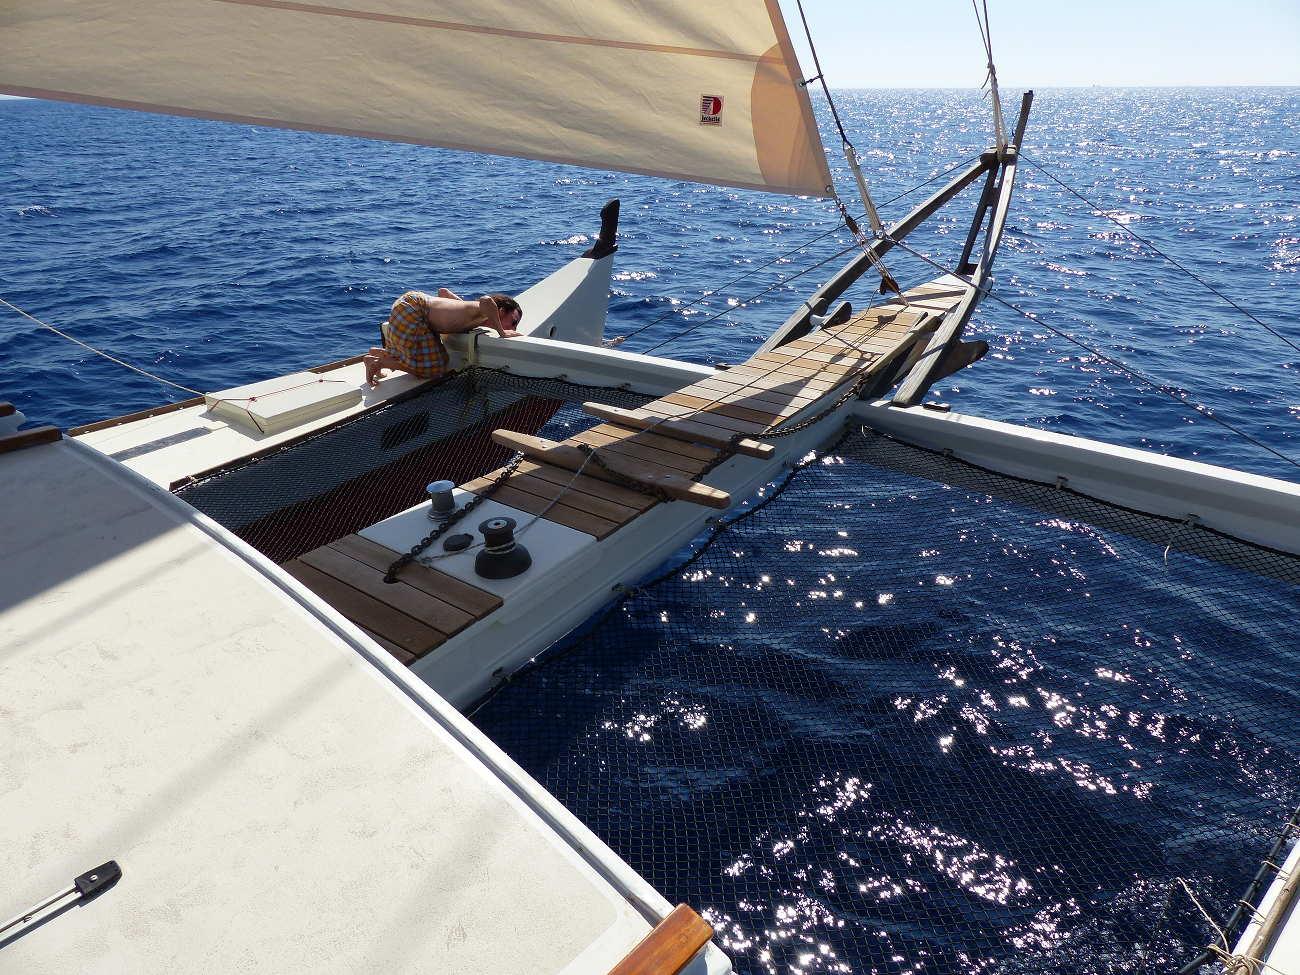 Pahi 63 bow trampoline, man leaning over and looking under hulls while boat is in motion